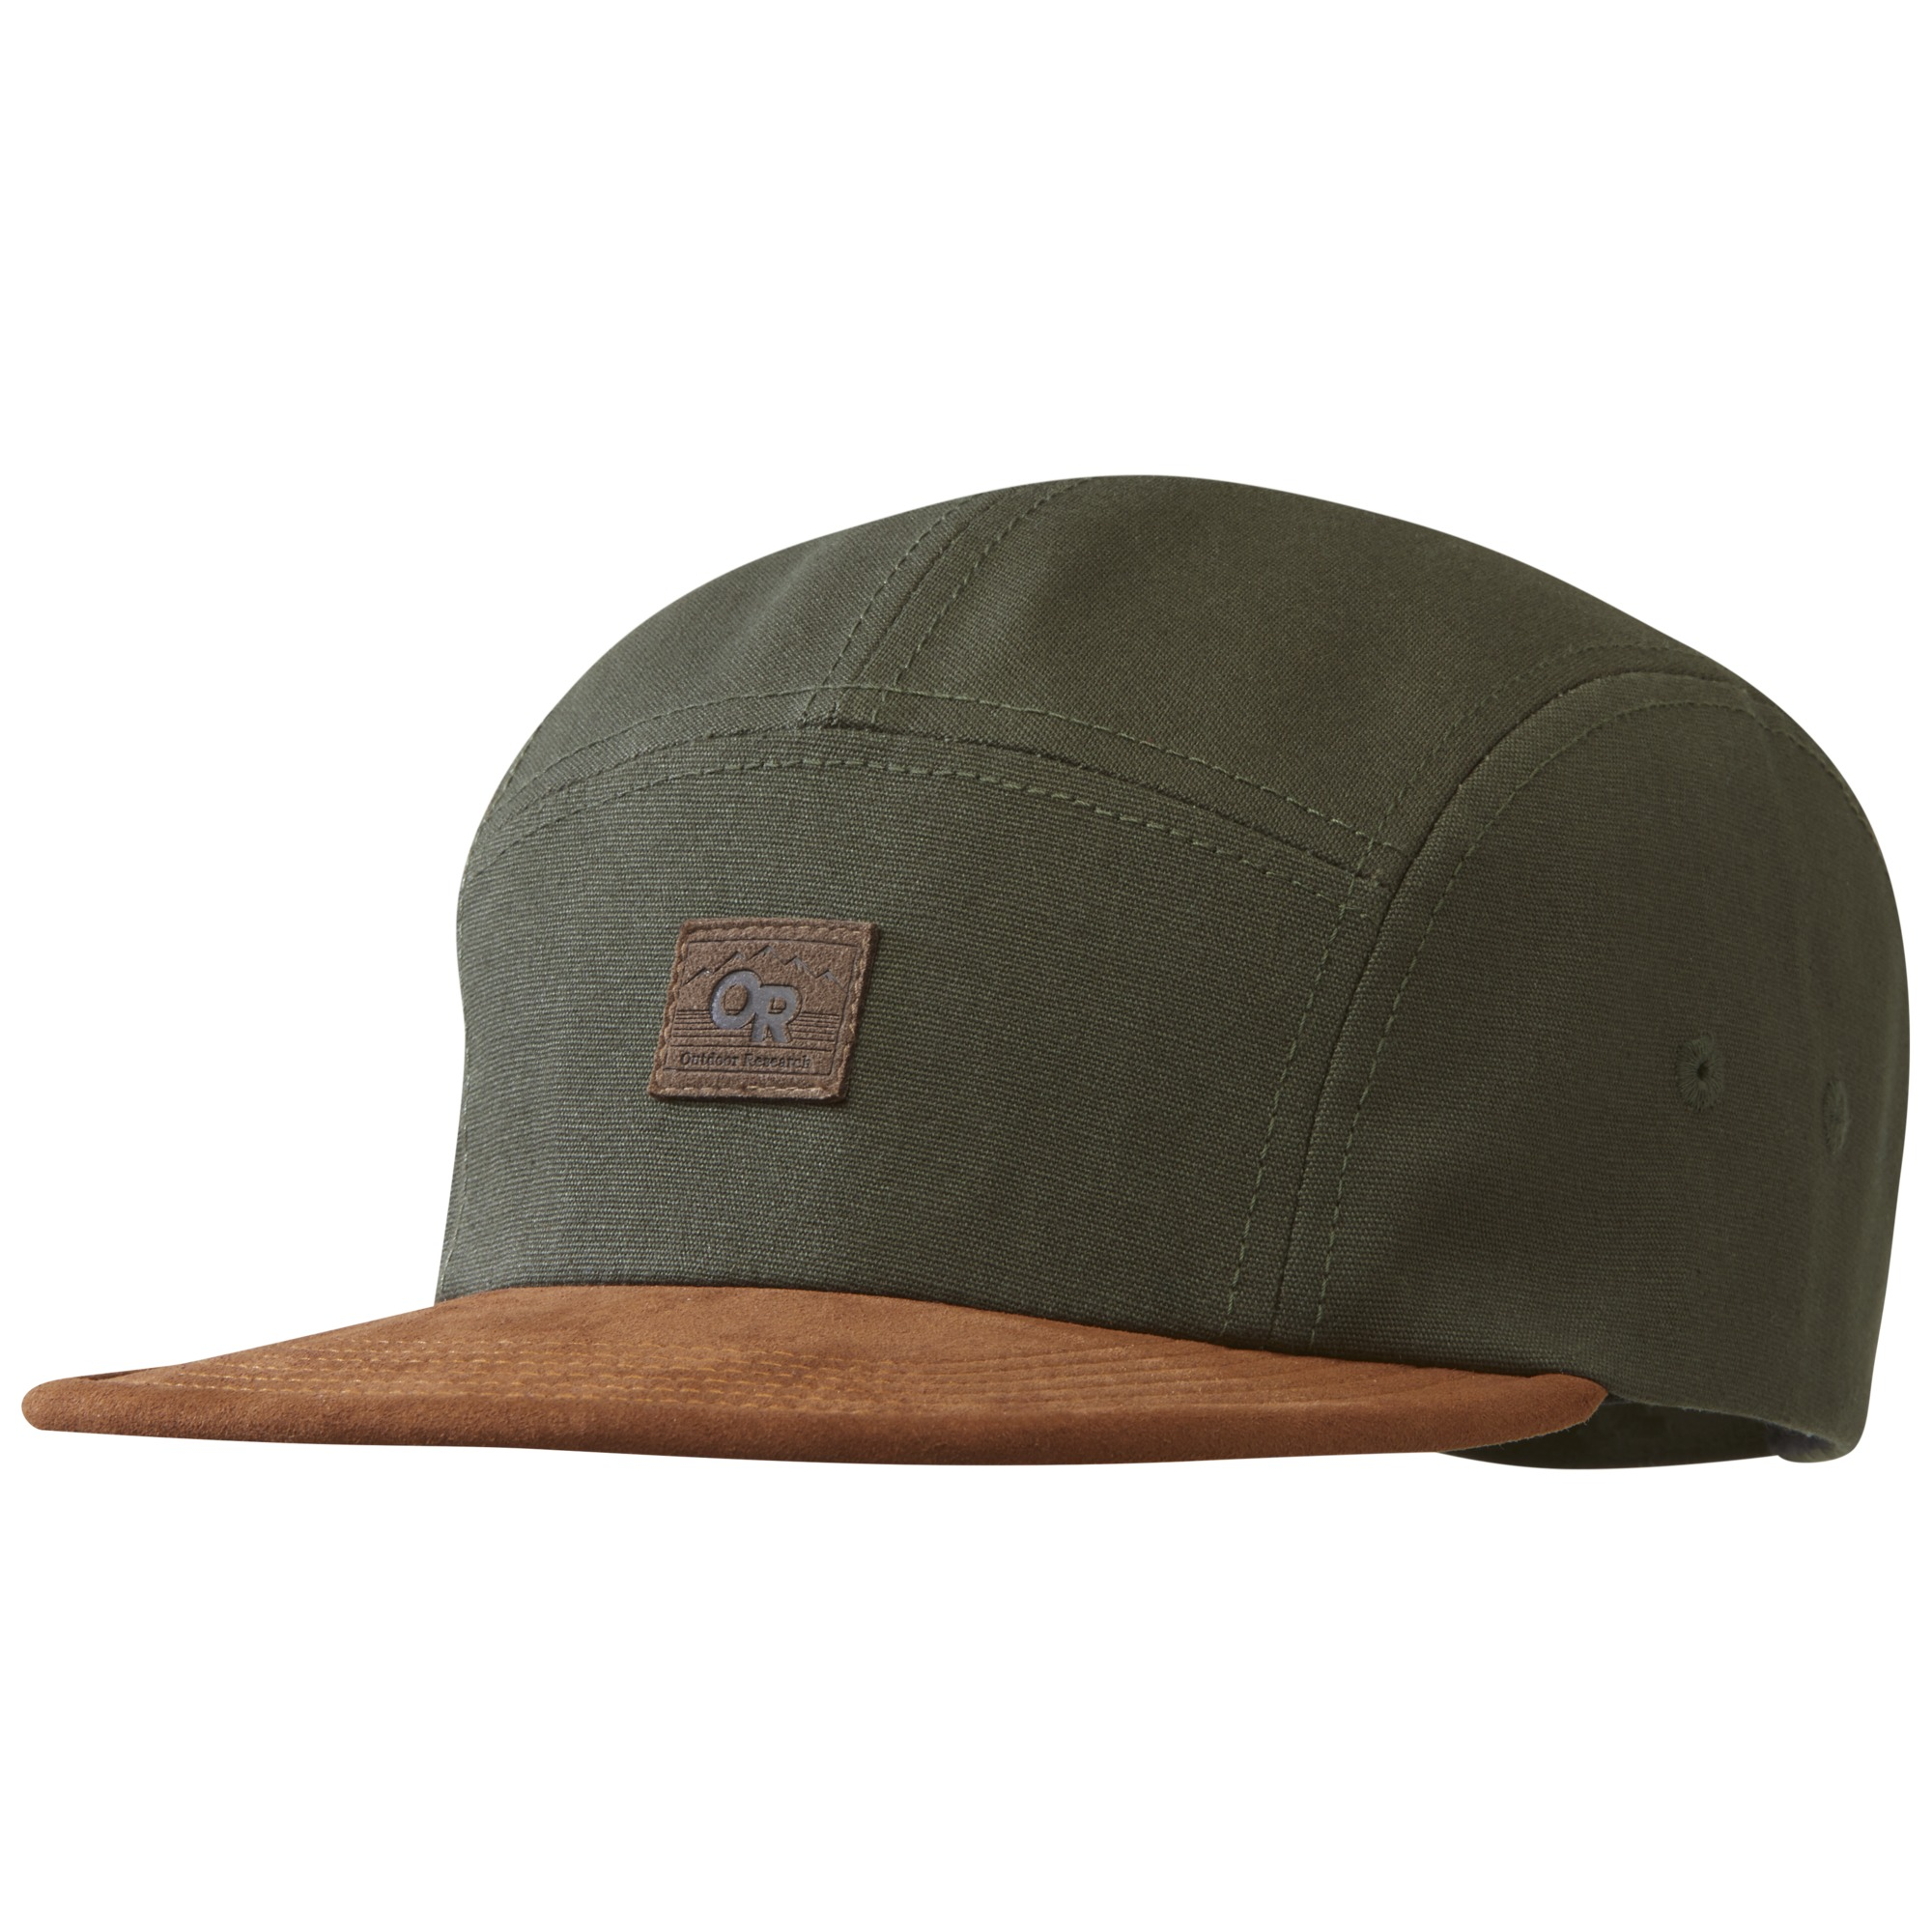 b41146be Murphy 5 Panel Hat - juniper/curry | Outdoor Research